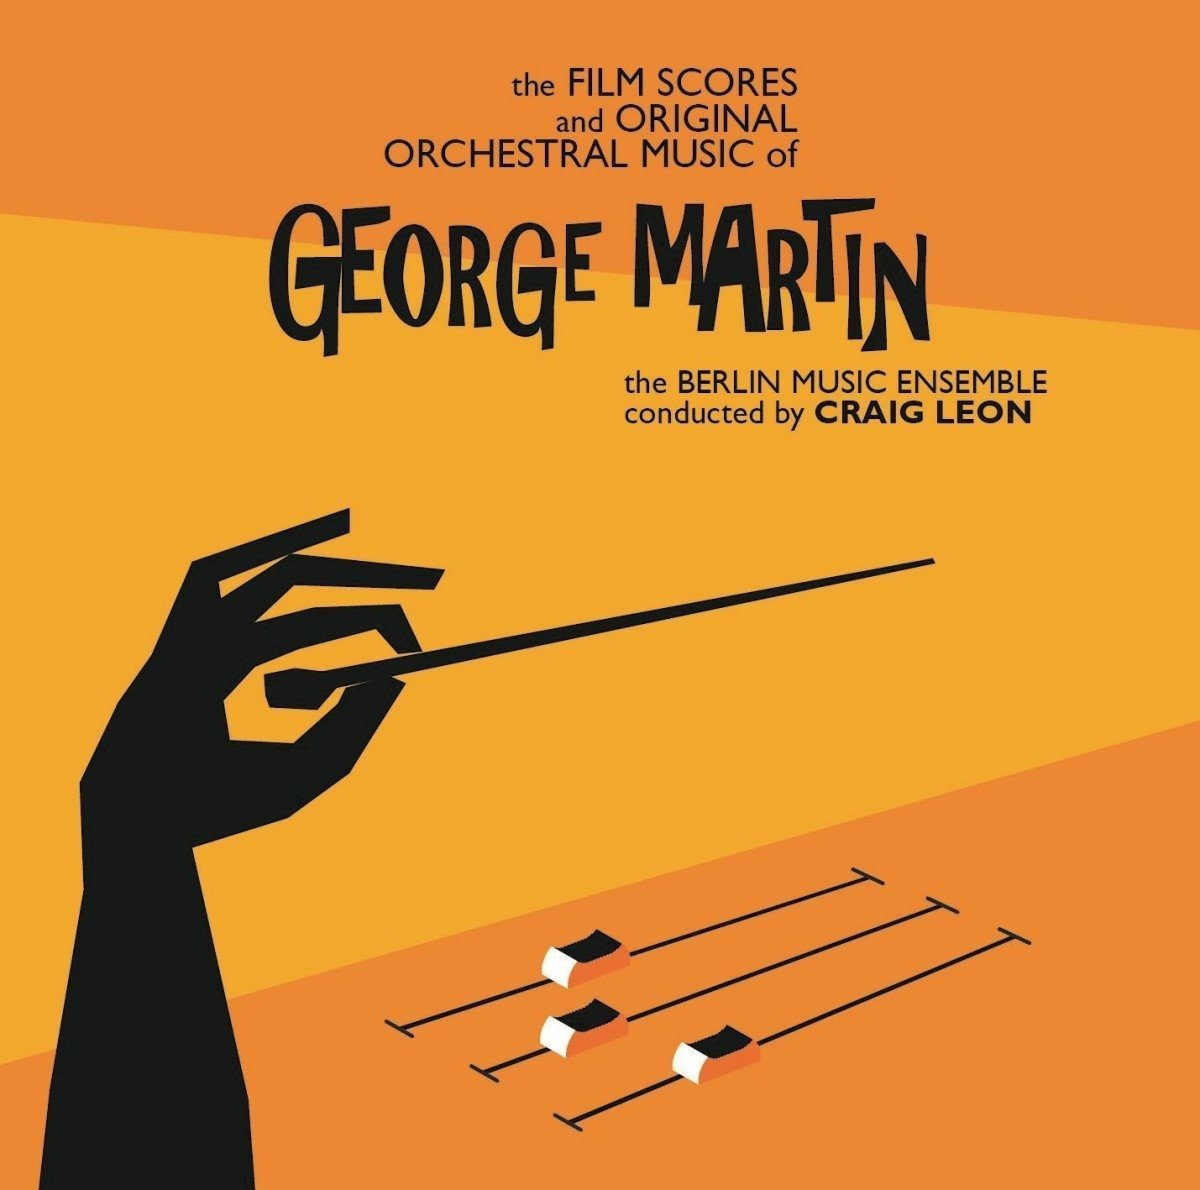 George Martin orchestral music